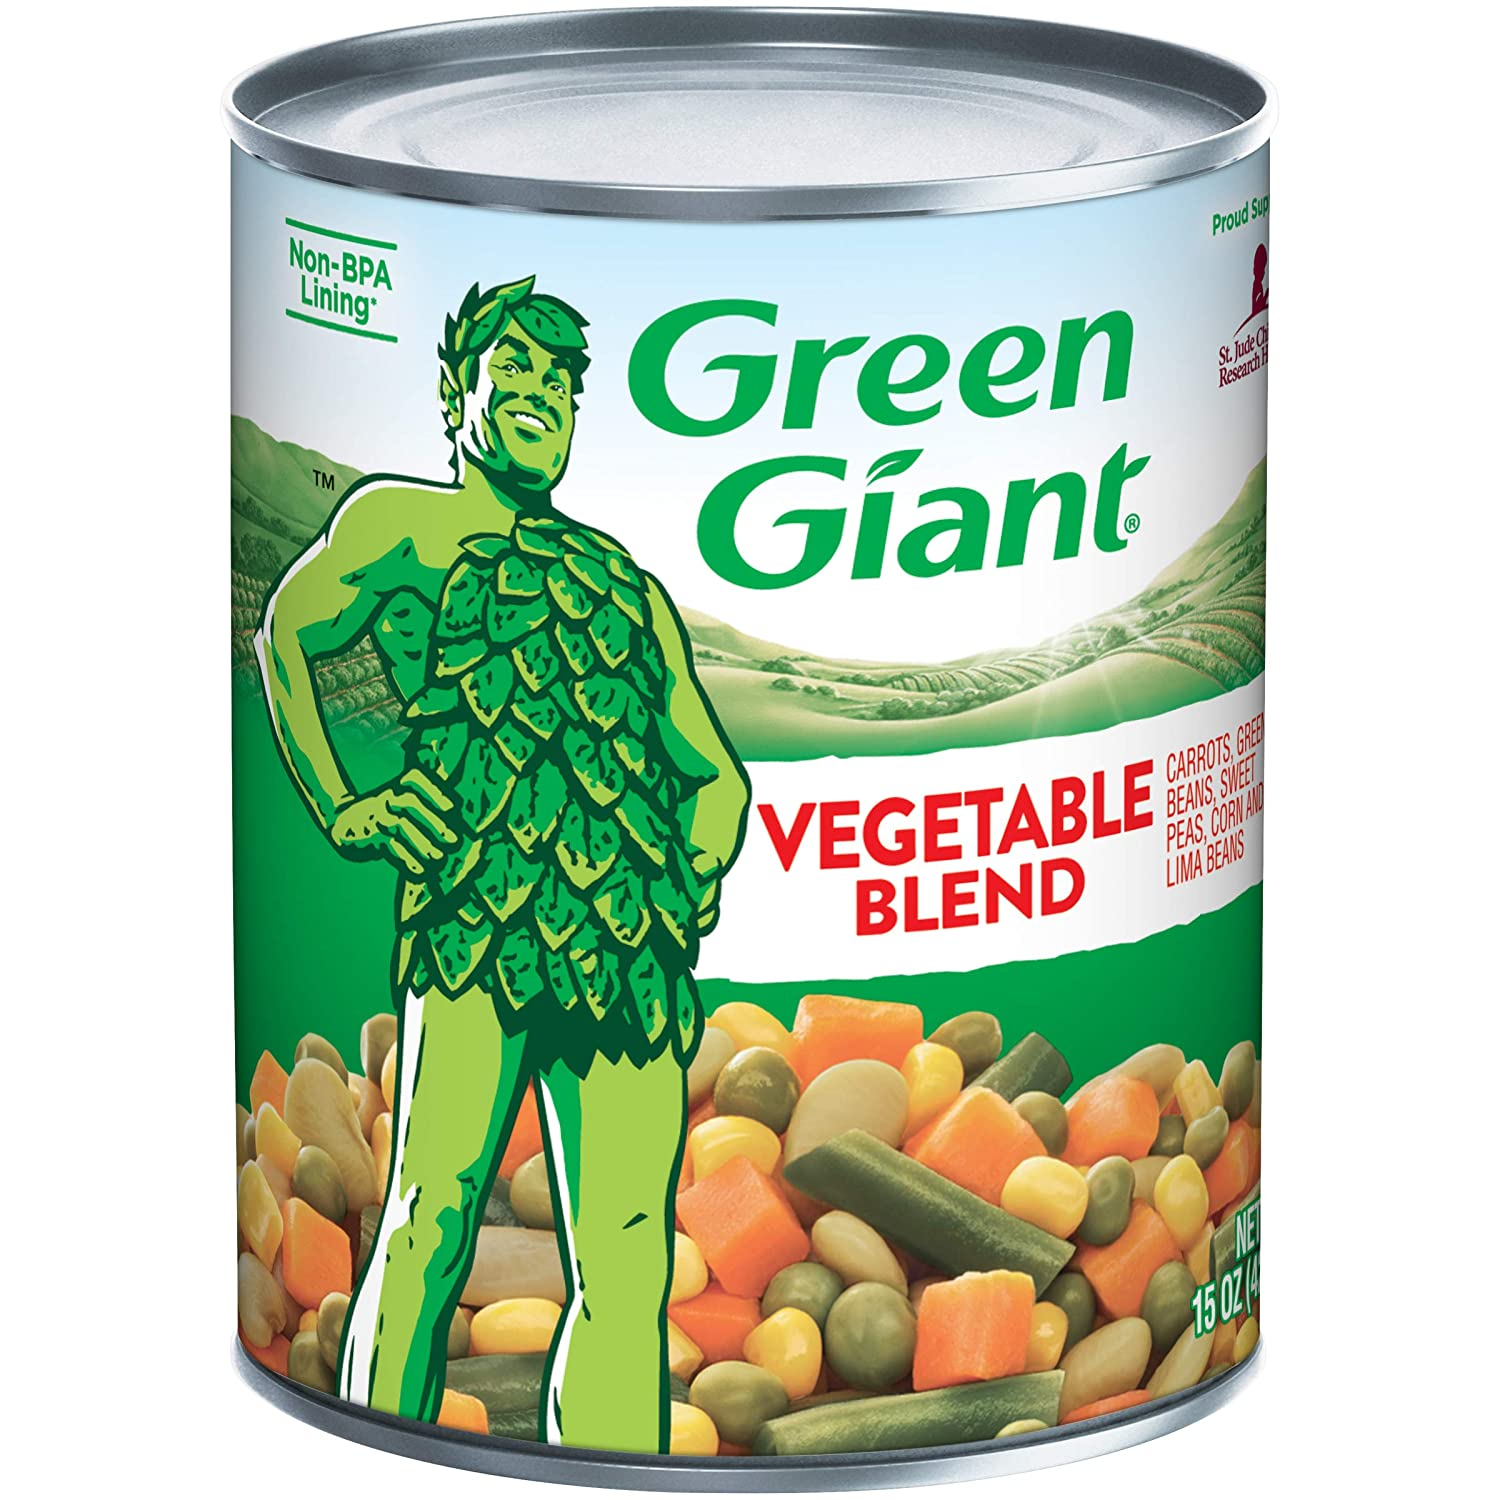 Single 15-ounce can of Green Giant Vegetable Blend